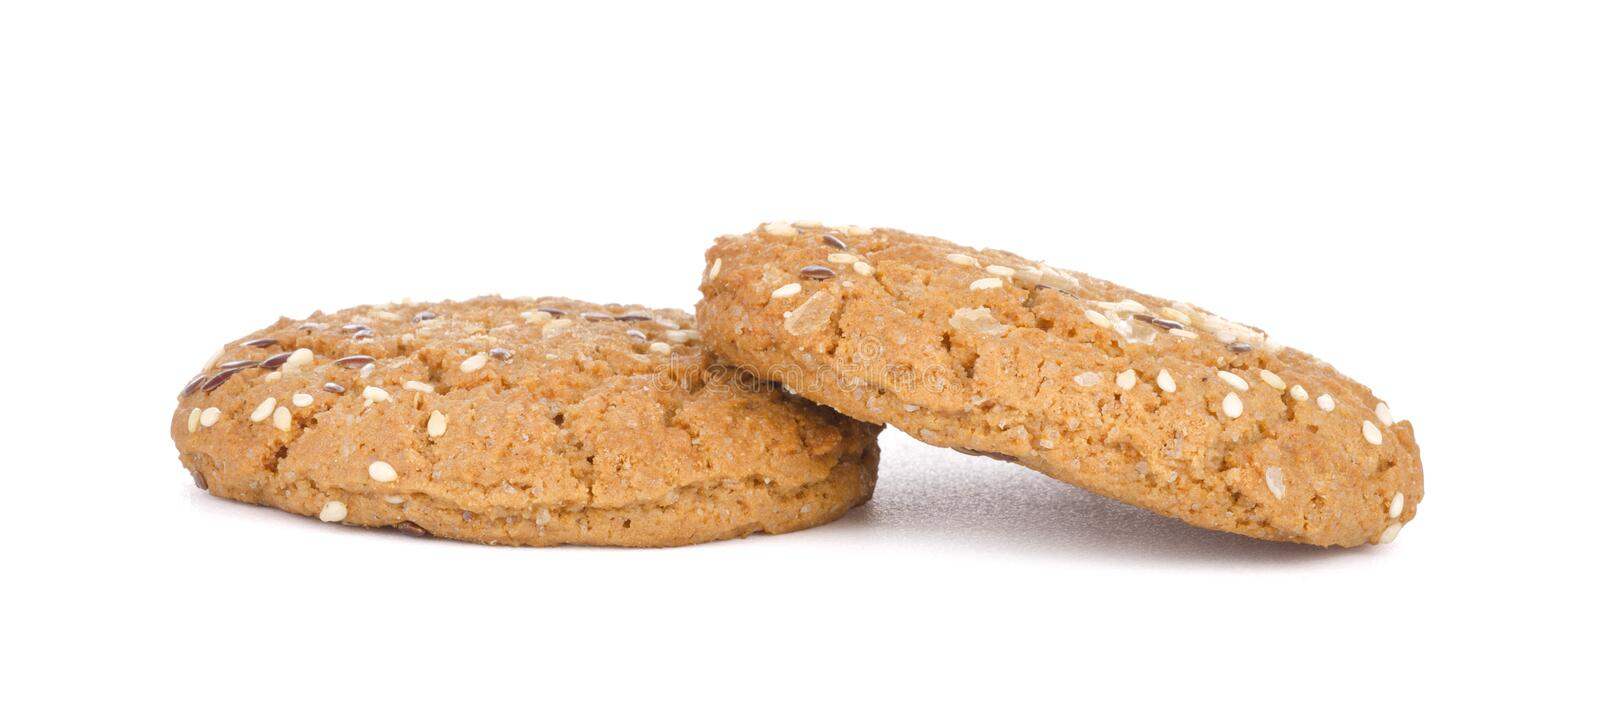 Two cookies stock images